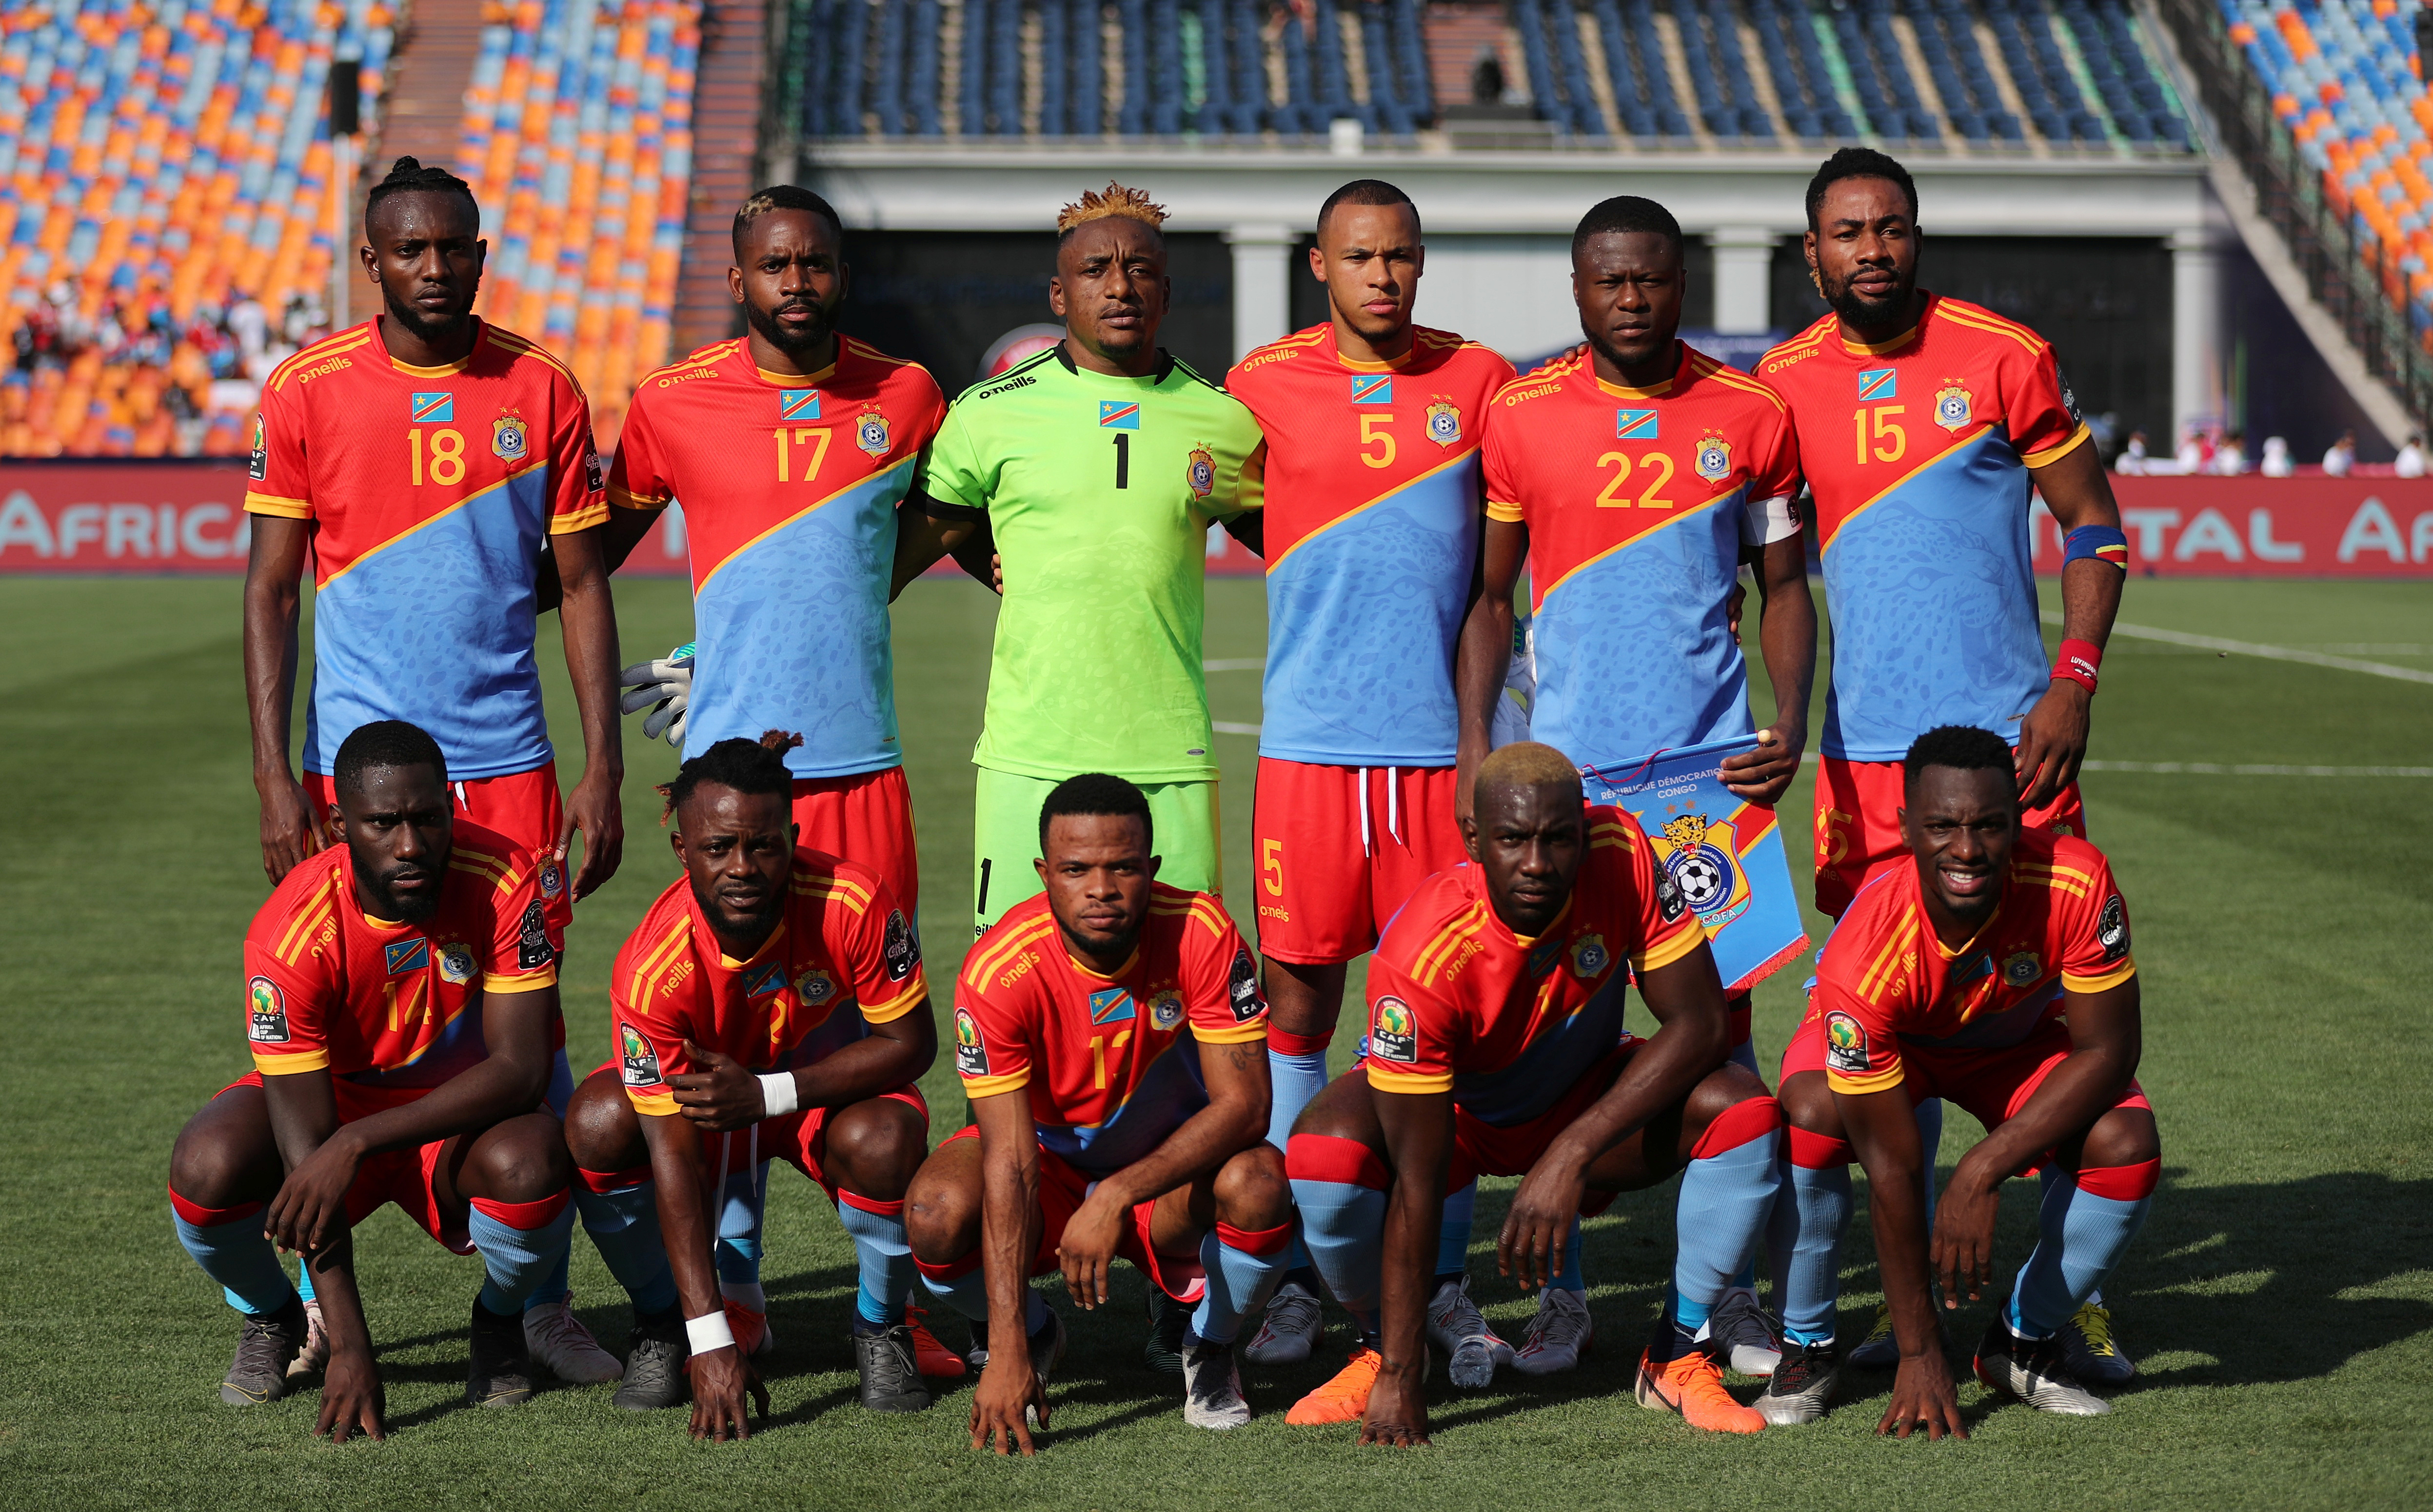 Soccer Football - Africa Cup of Nations 2019 - Group A - DR Congo v Uganda - Cairo International Stadium, Cairo, Egypt - June 22, 2019  DR Congo players pose for a team group photo before the match   REUTERS/Suhaib Salem